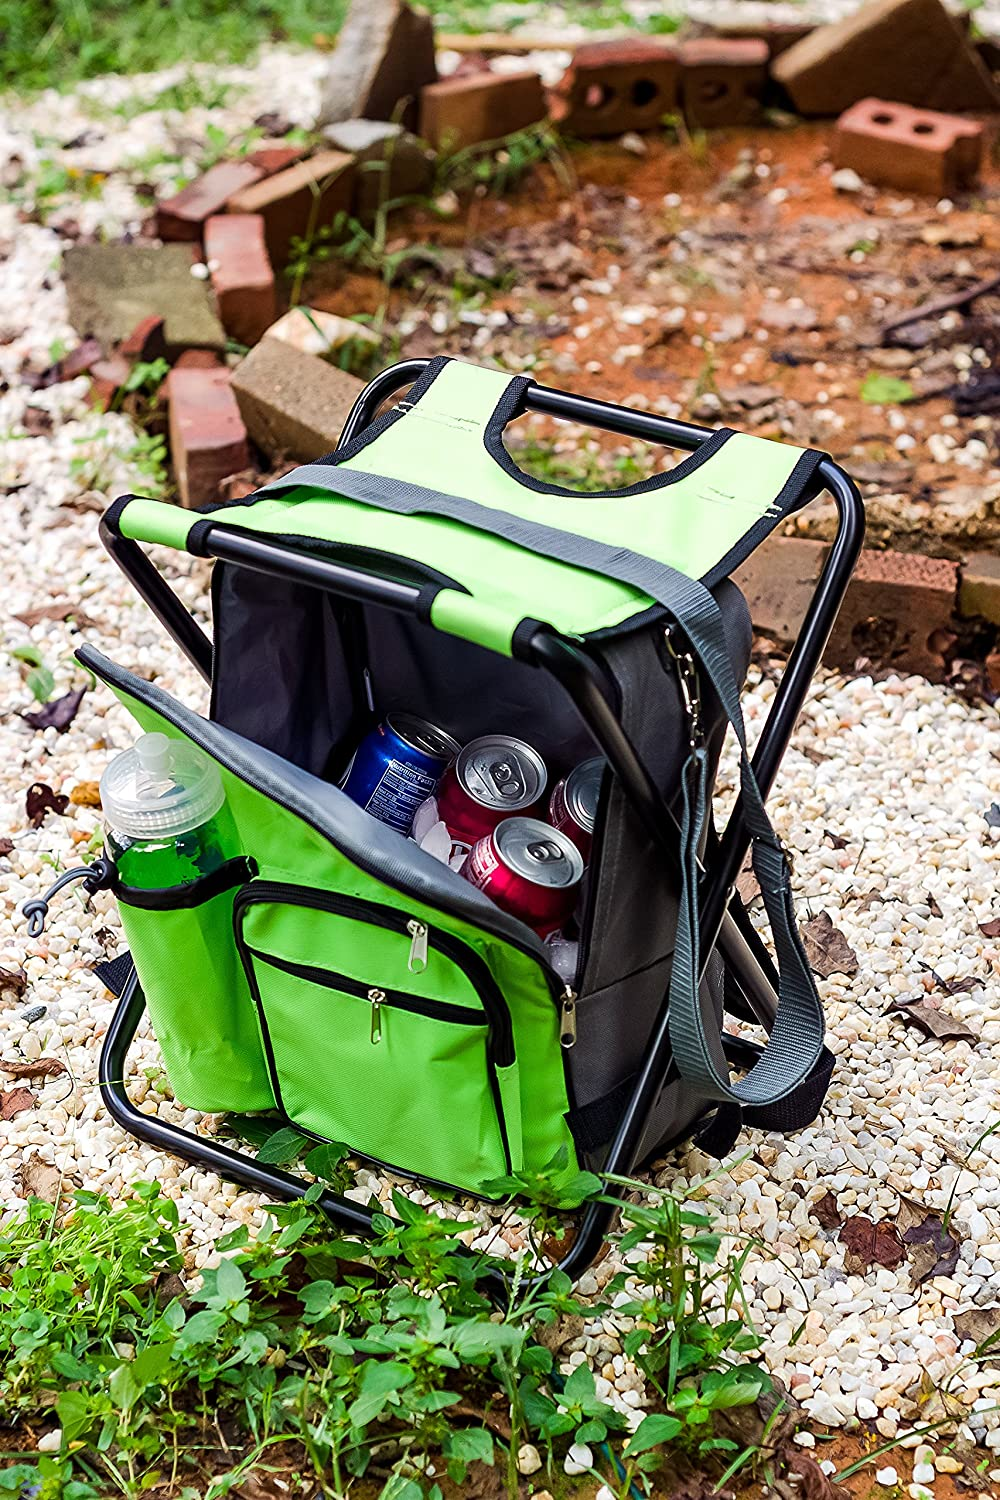 Cooler, Stool, Backpack Trio made our list of gifts for active women so if you want unique camping gifts for her, you'll find tons of them in our hand-selected list of gift ideas for women who hike, fish and camp!